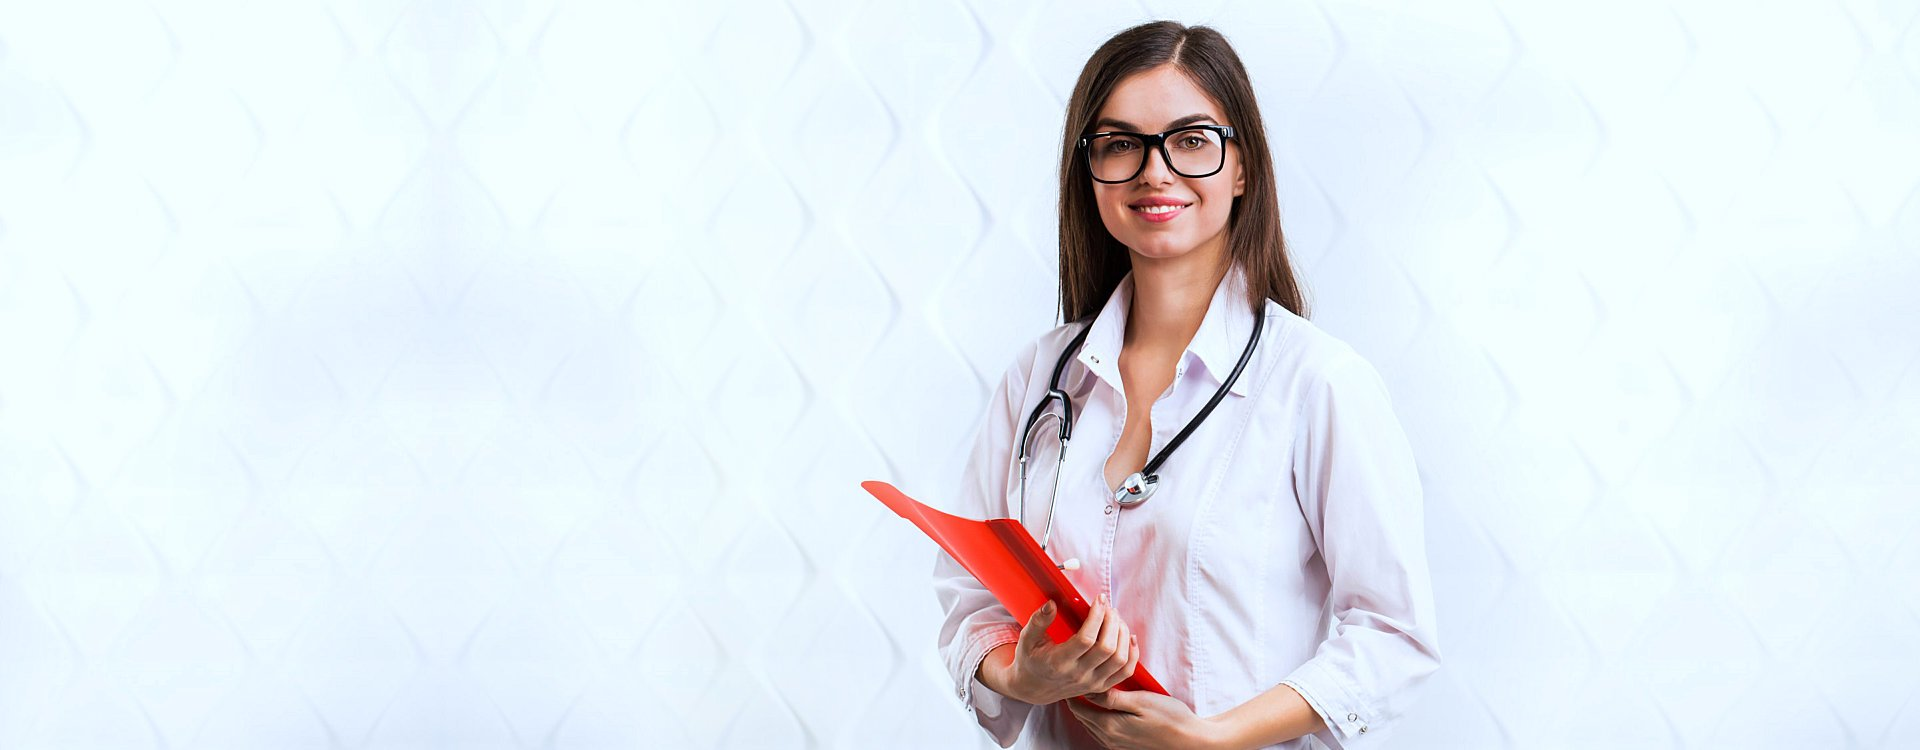 beautiful nurse with glasses